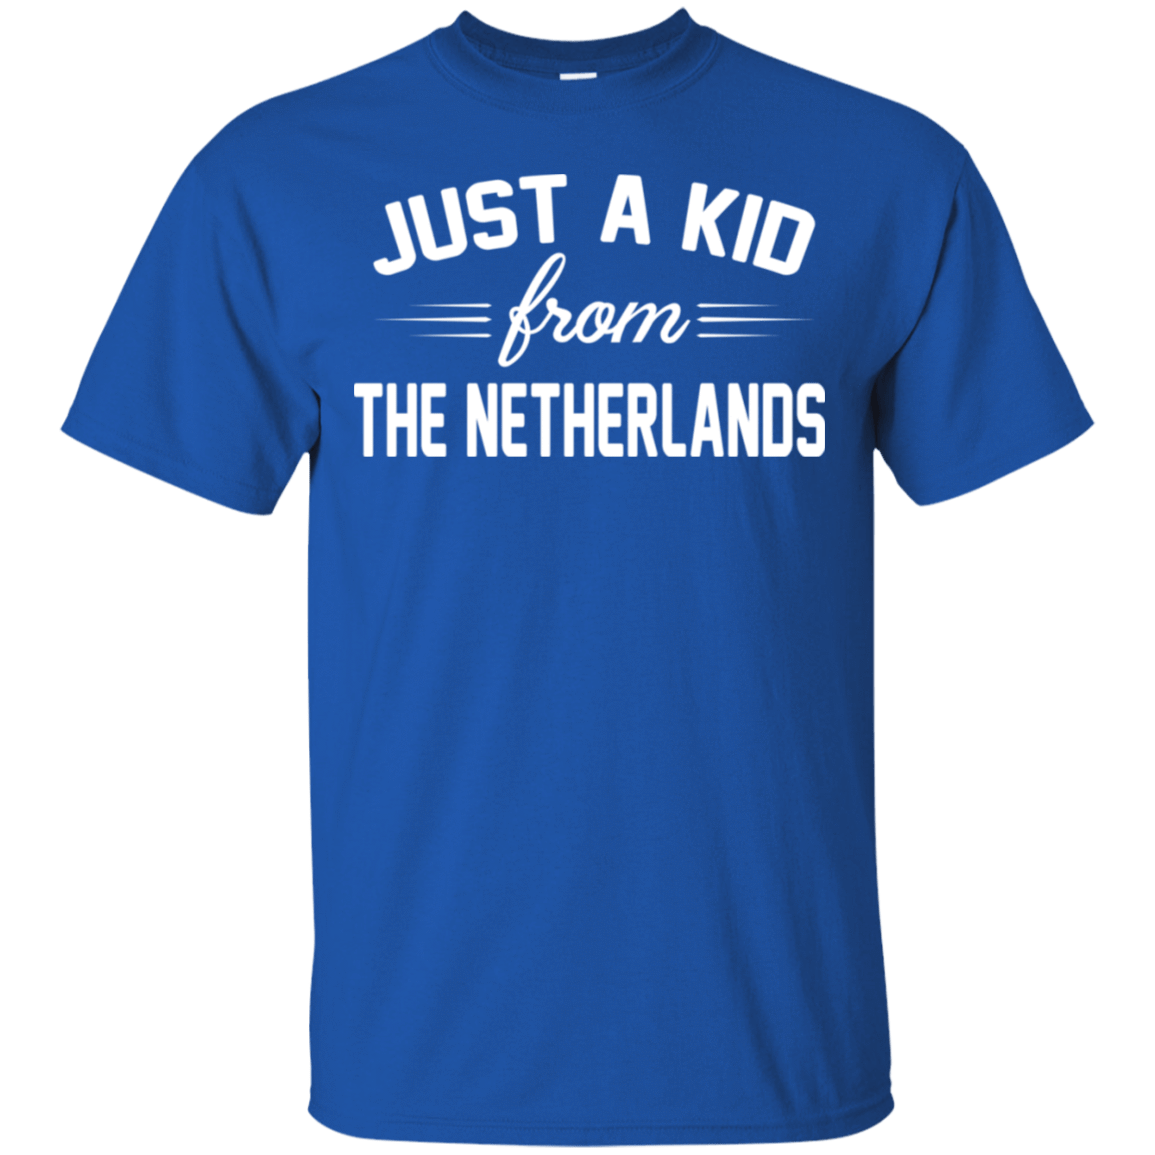 Just a Kid Store | Netherlands T-Shirts, Hoodie, Tank 22-110-72090839-249 - Tee Ript